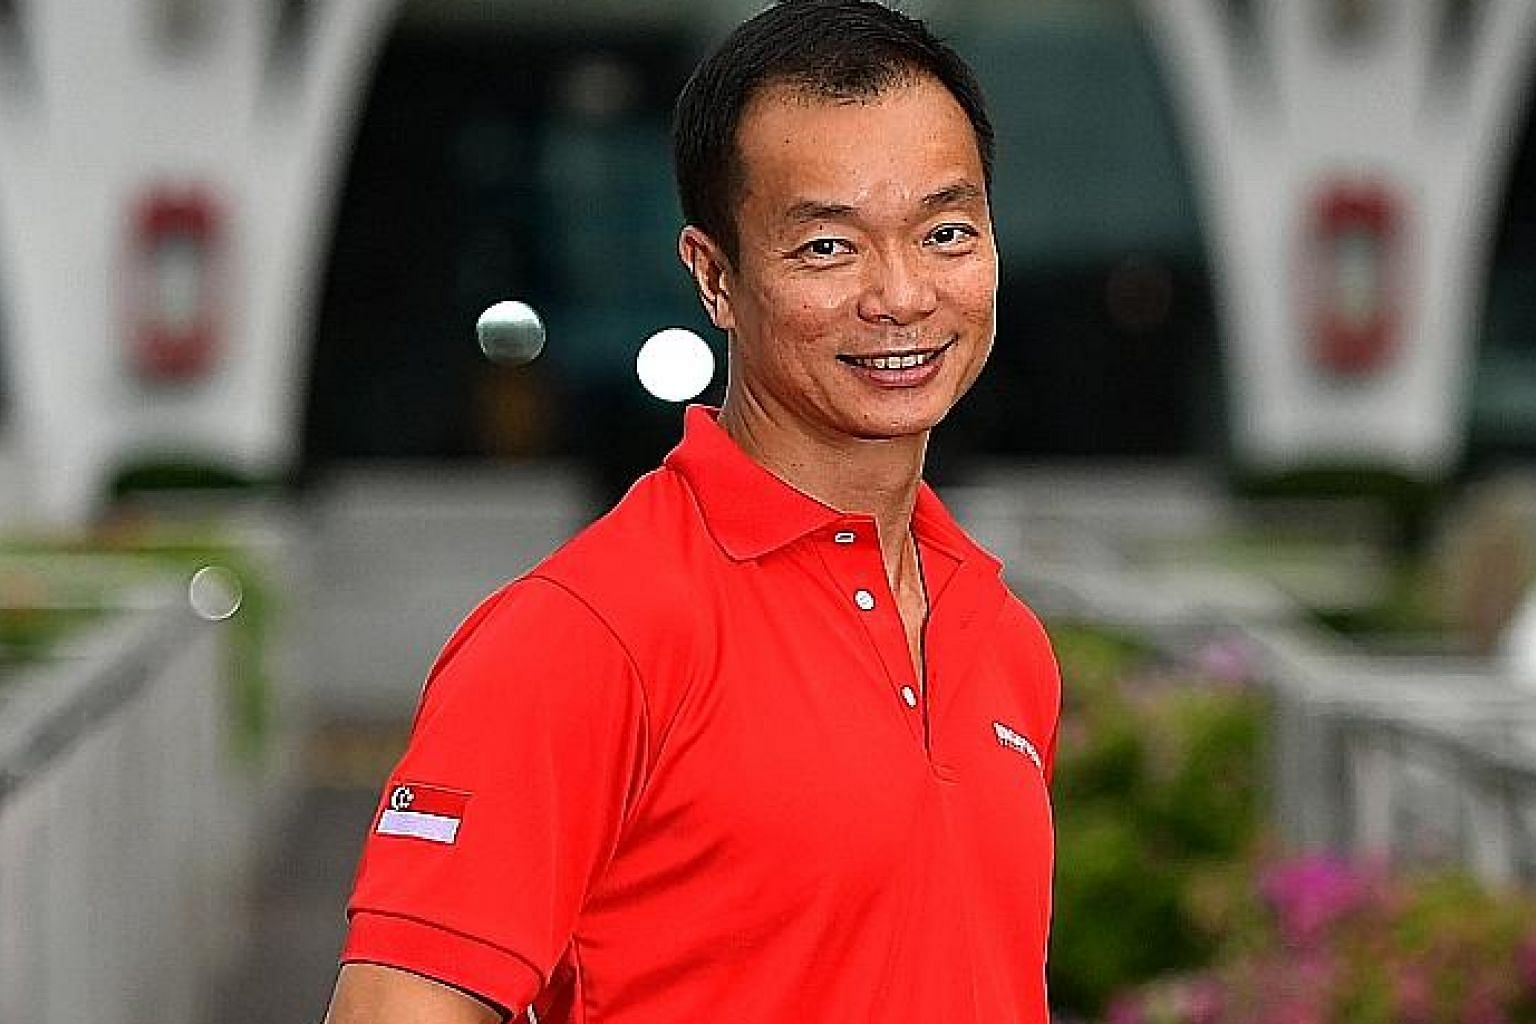 Dr Benedict Tan hopes to enhance sport science support for Singapore athletes in his new role.